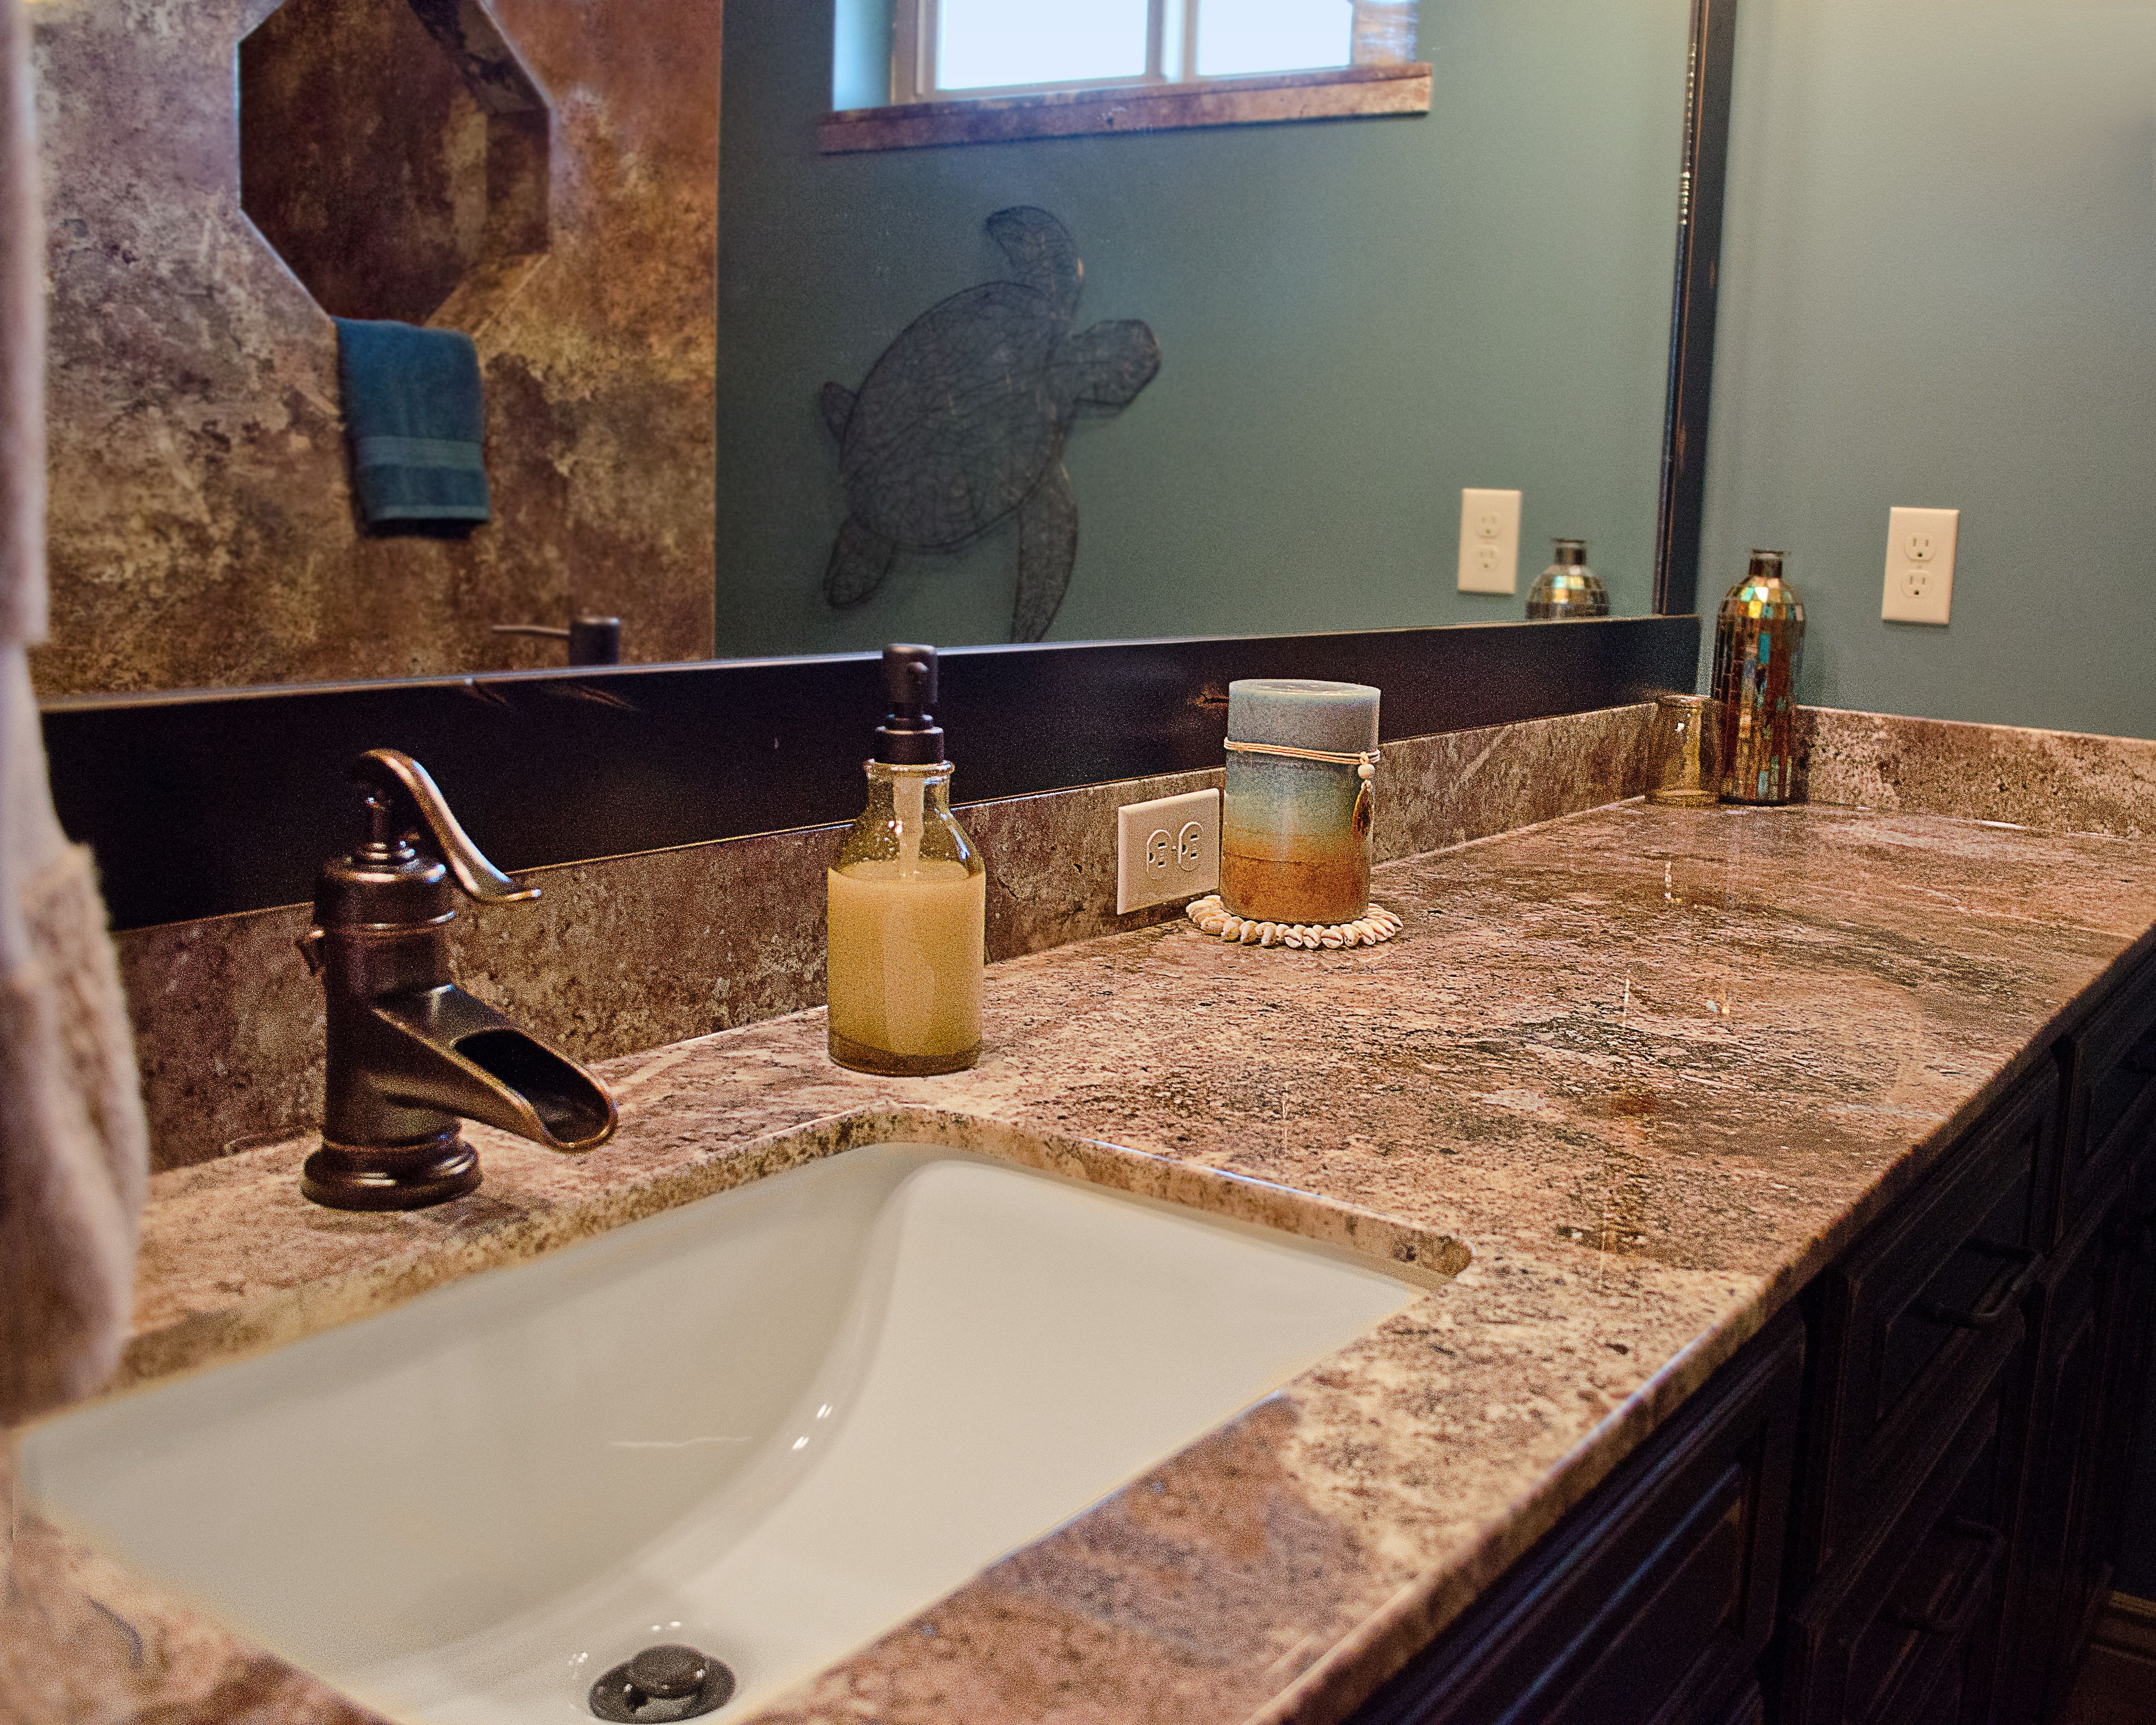 Trustone Cultured Marble In Abalone Travertine With Mediterranean Blue Paint Cultured Marble Mediterranean Blue Paint Bathrooms Remodel